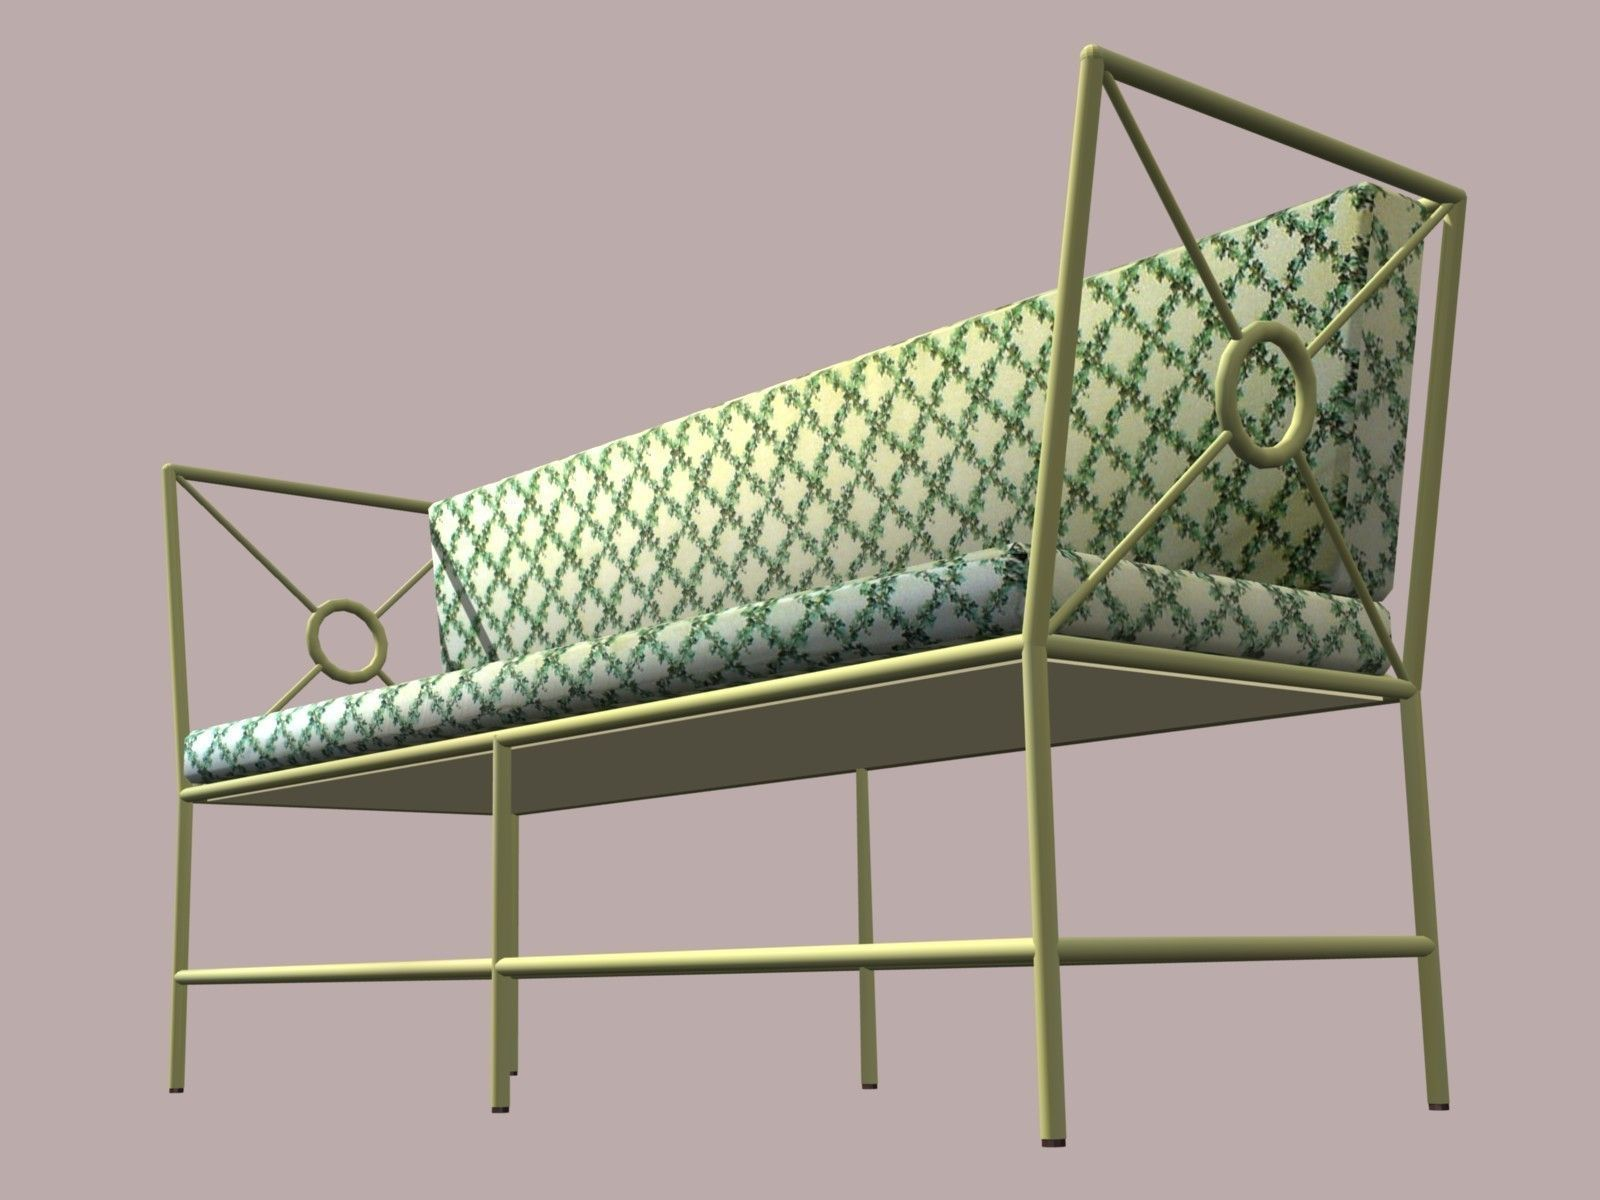 Wrought Iron Sofa Model Low Poly Max Obj Mtl Blend Wrl Wrz